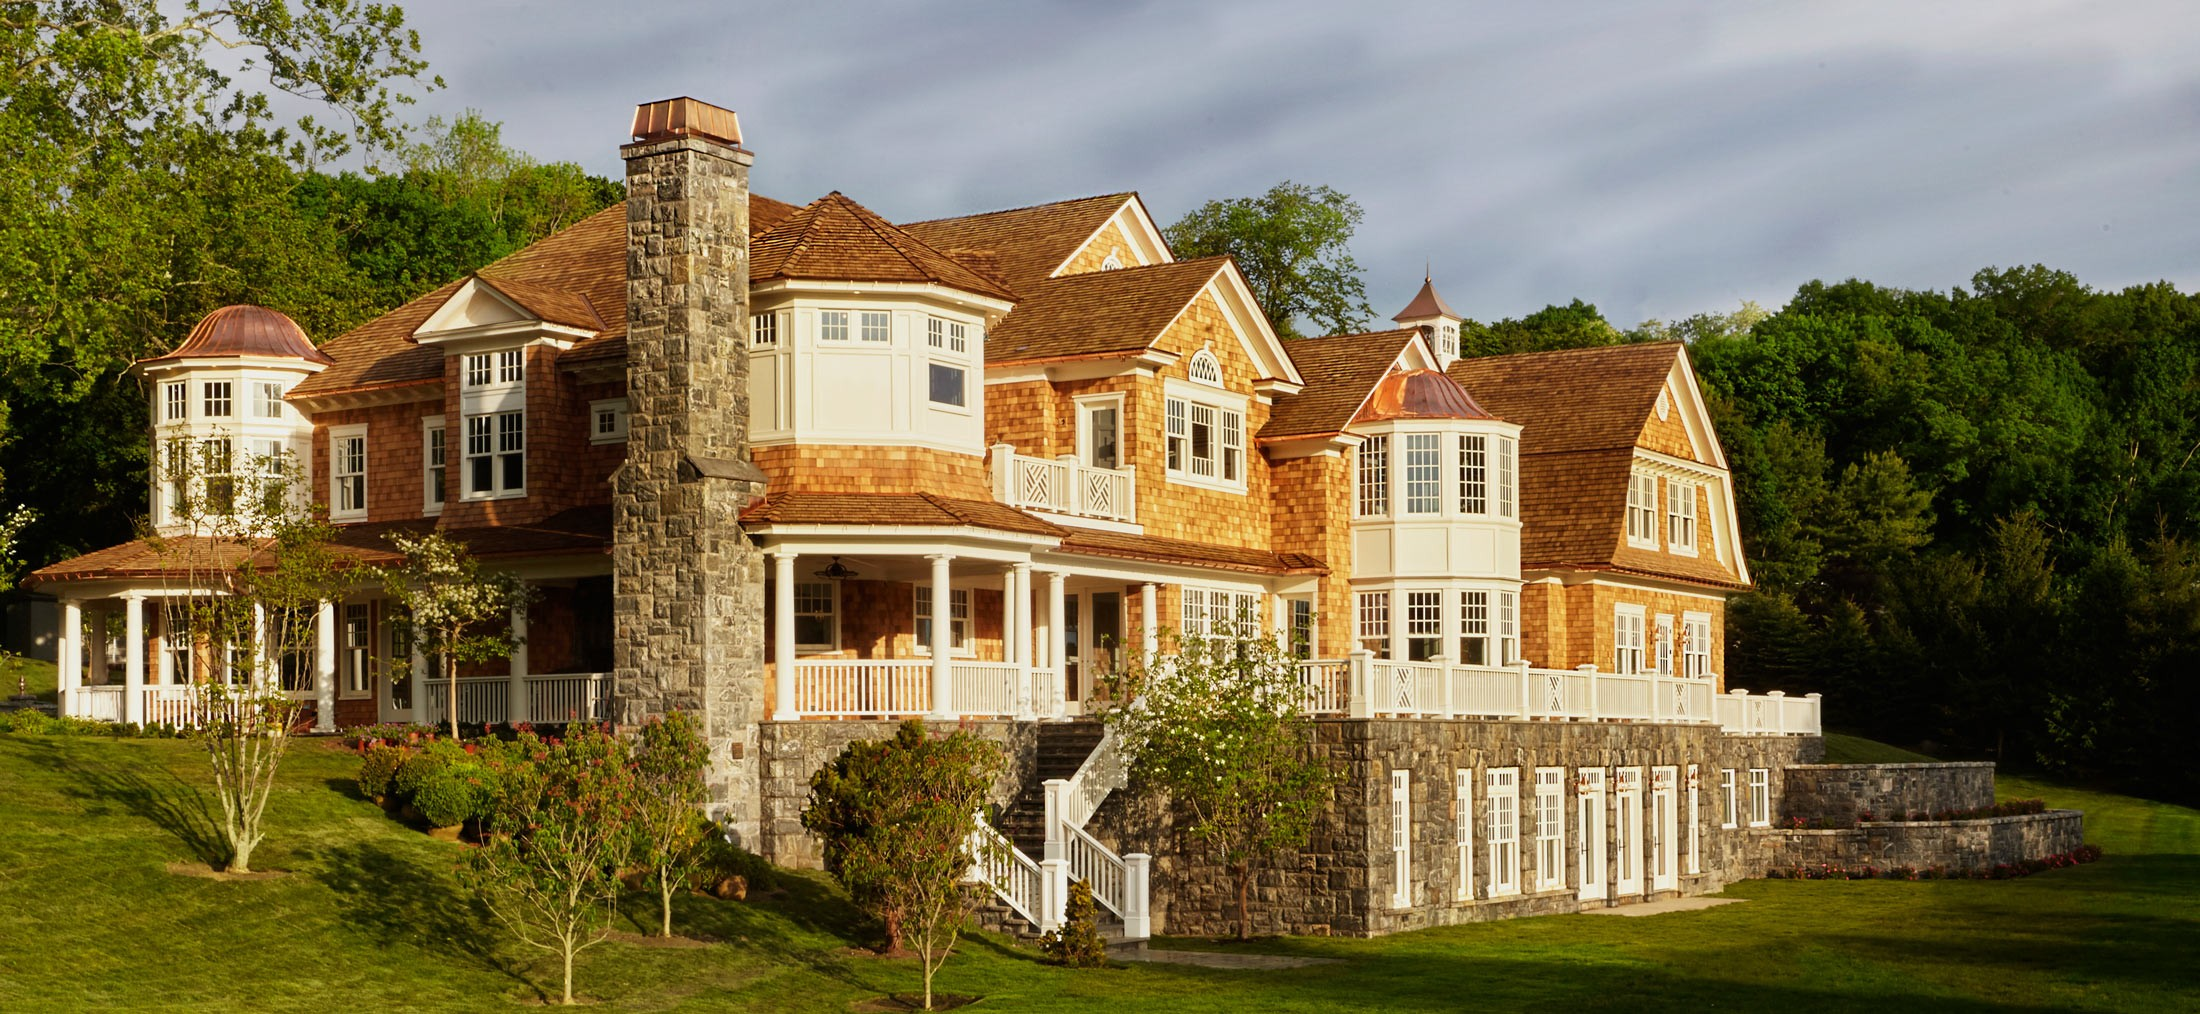 Greystone on hudson luxury for sale estate homes in for Estate house